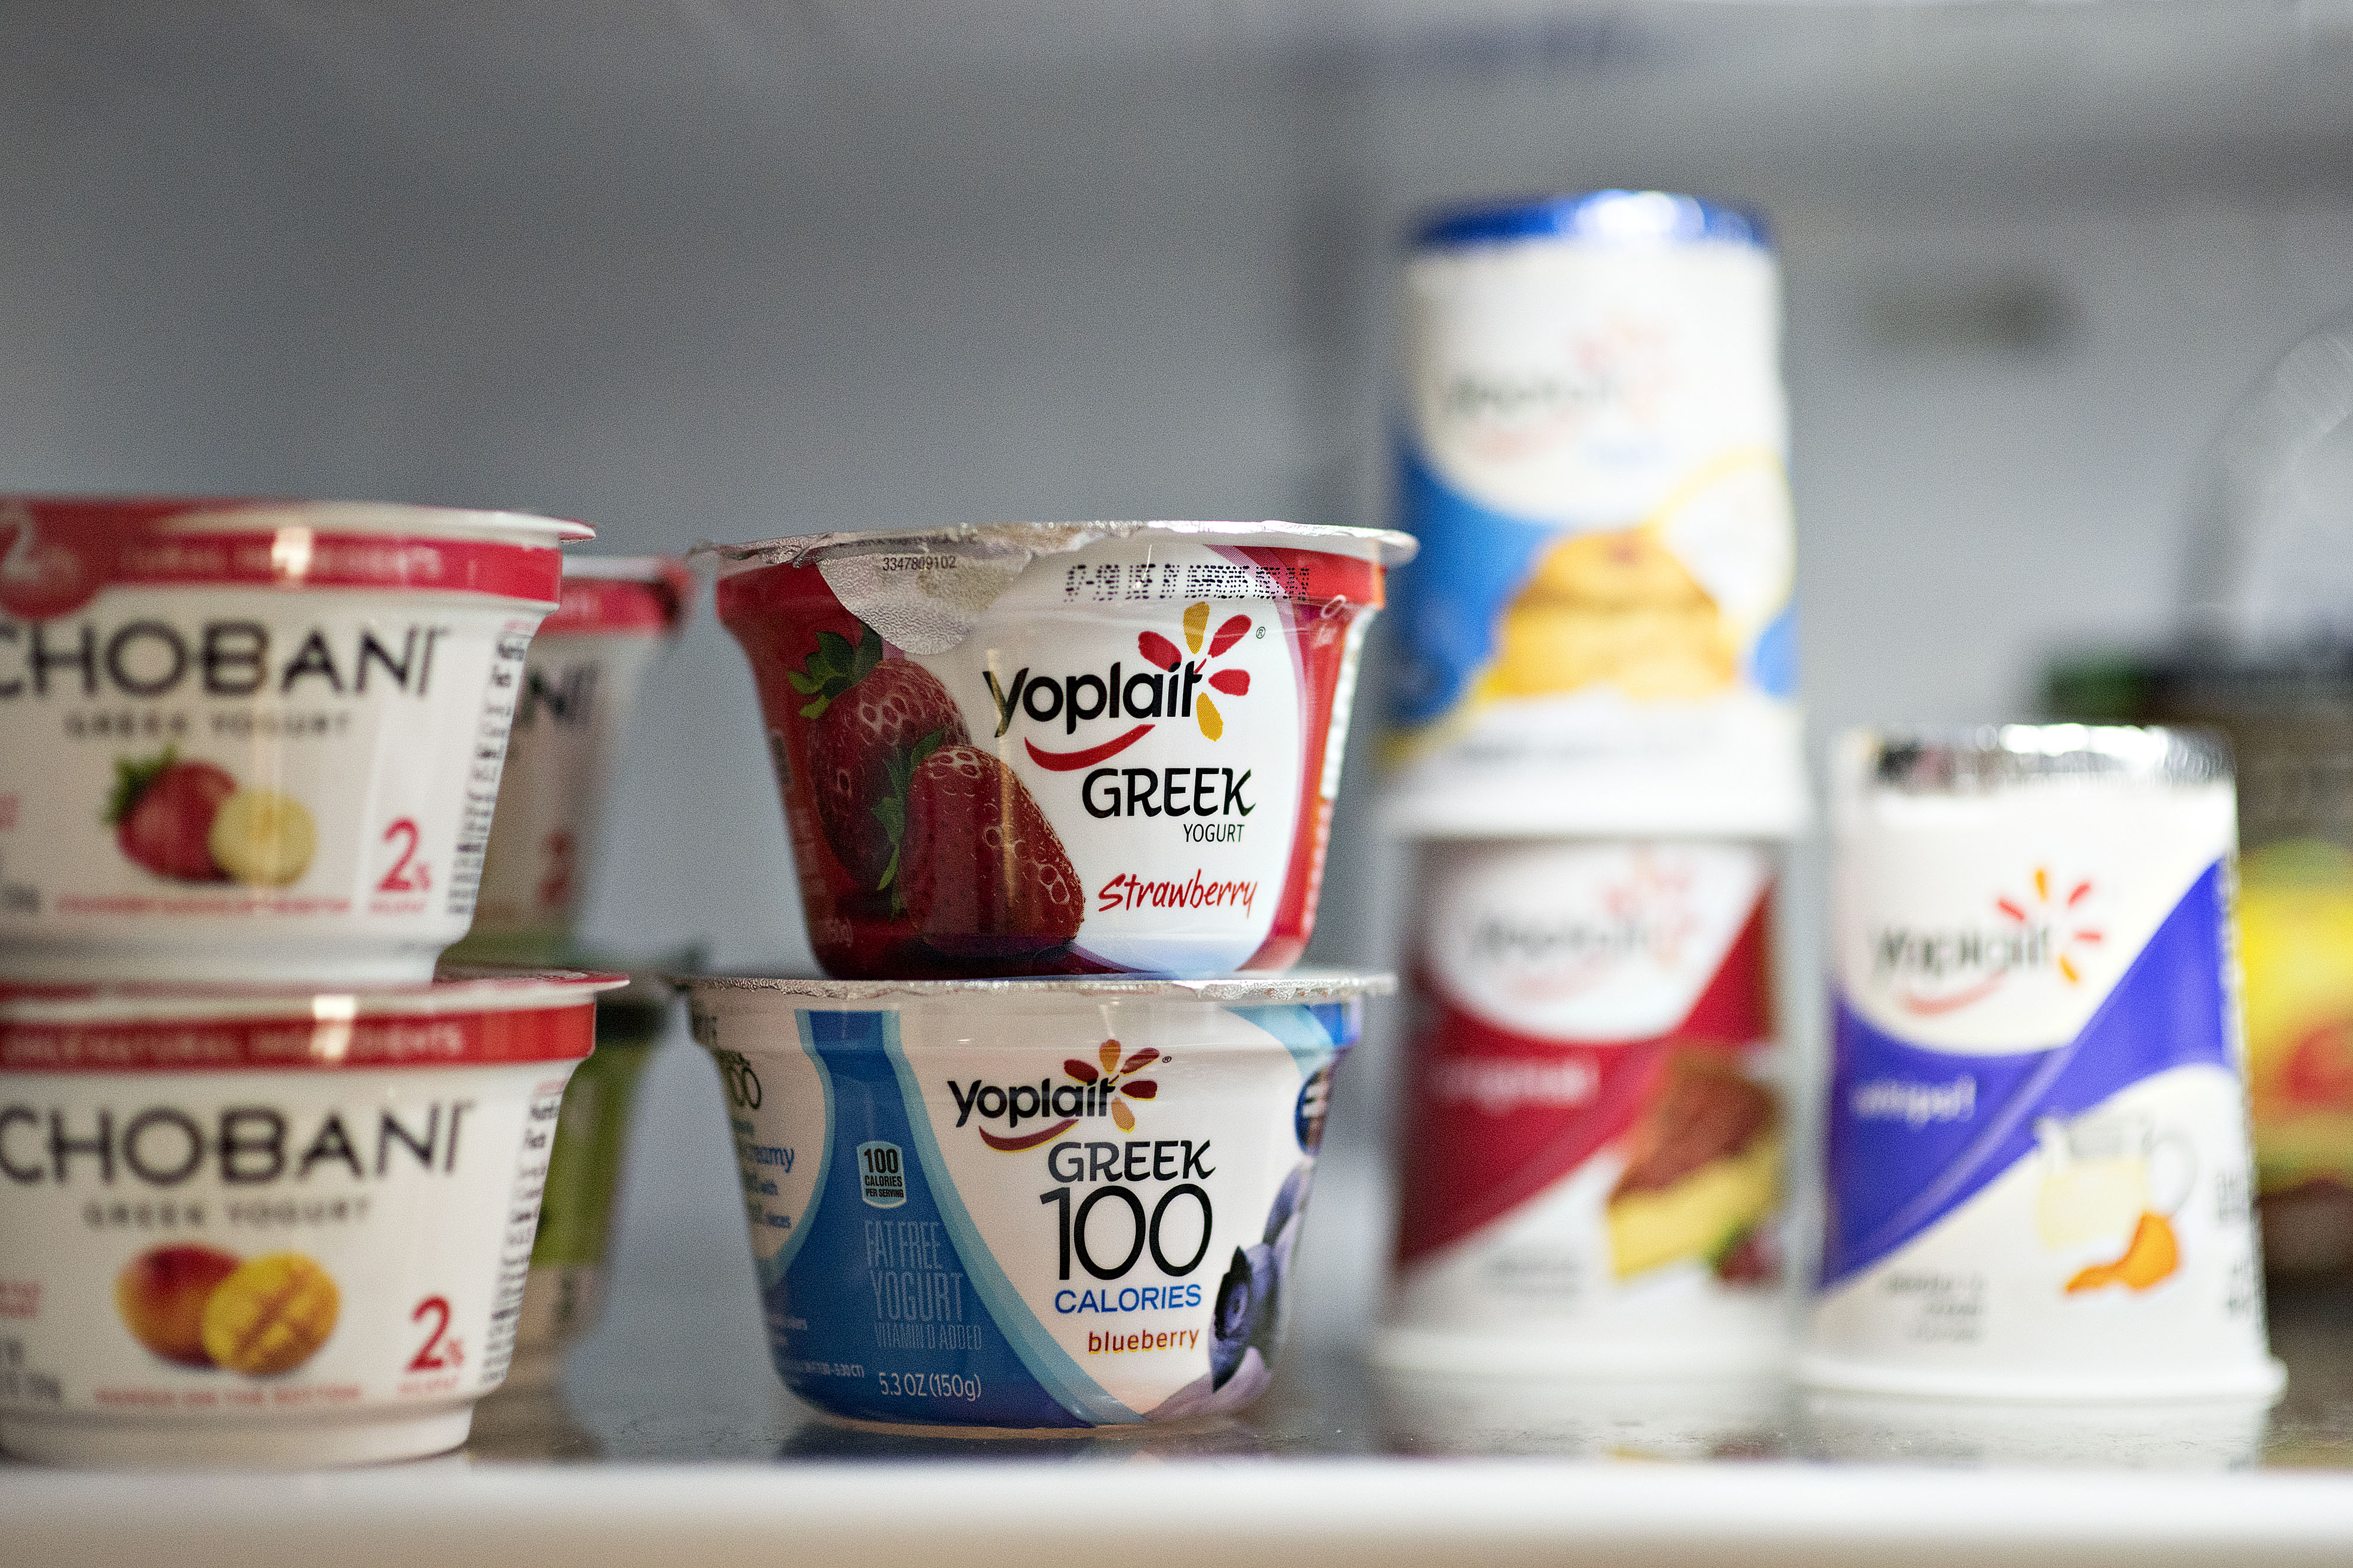 General Mills Inc. Yoplait brand yogurt products arranged for a photograph in Tiskilwa, Illinois, U.S., on Wednesday, March 18, 2015.